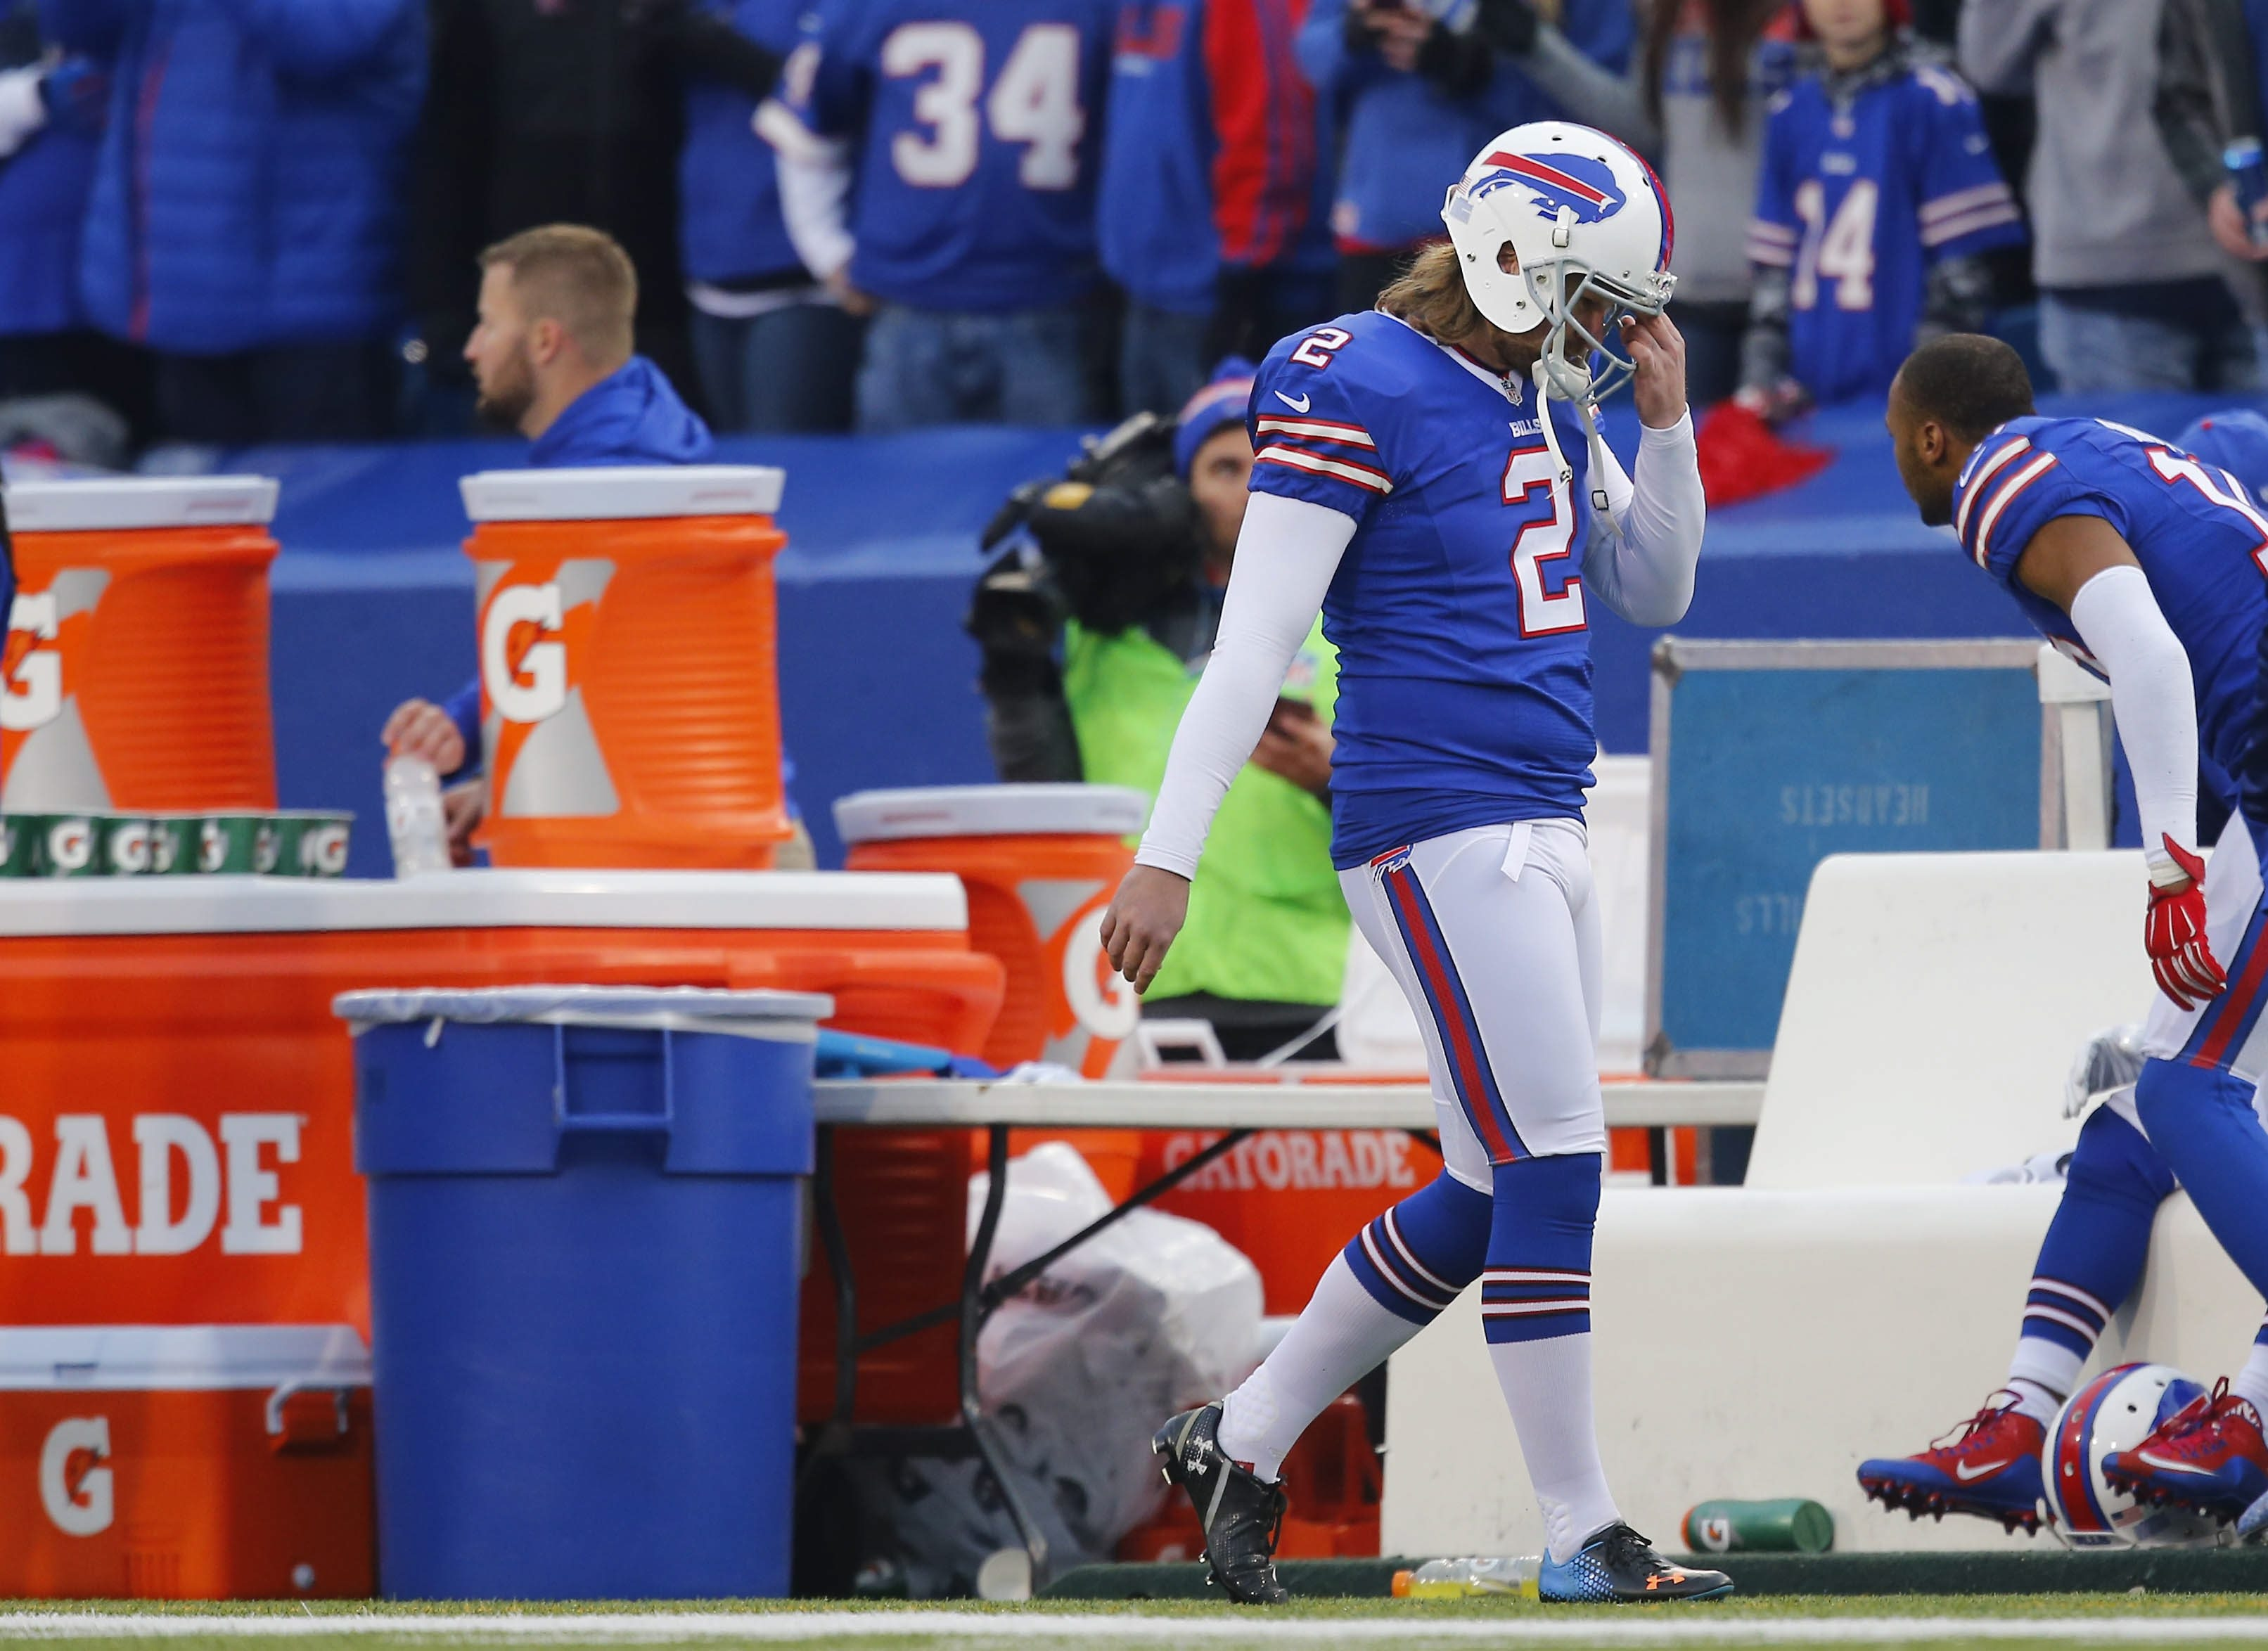 Buffalo Bills' Dan Carpenter reacts to missing an extra point in the fourth quarter at Ralph Wilson Stadium in Orchard Park, Sunday, Dec. 6, 2015.  (Mark Mulville/Buffalo News)